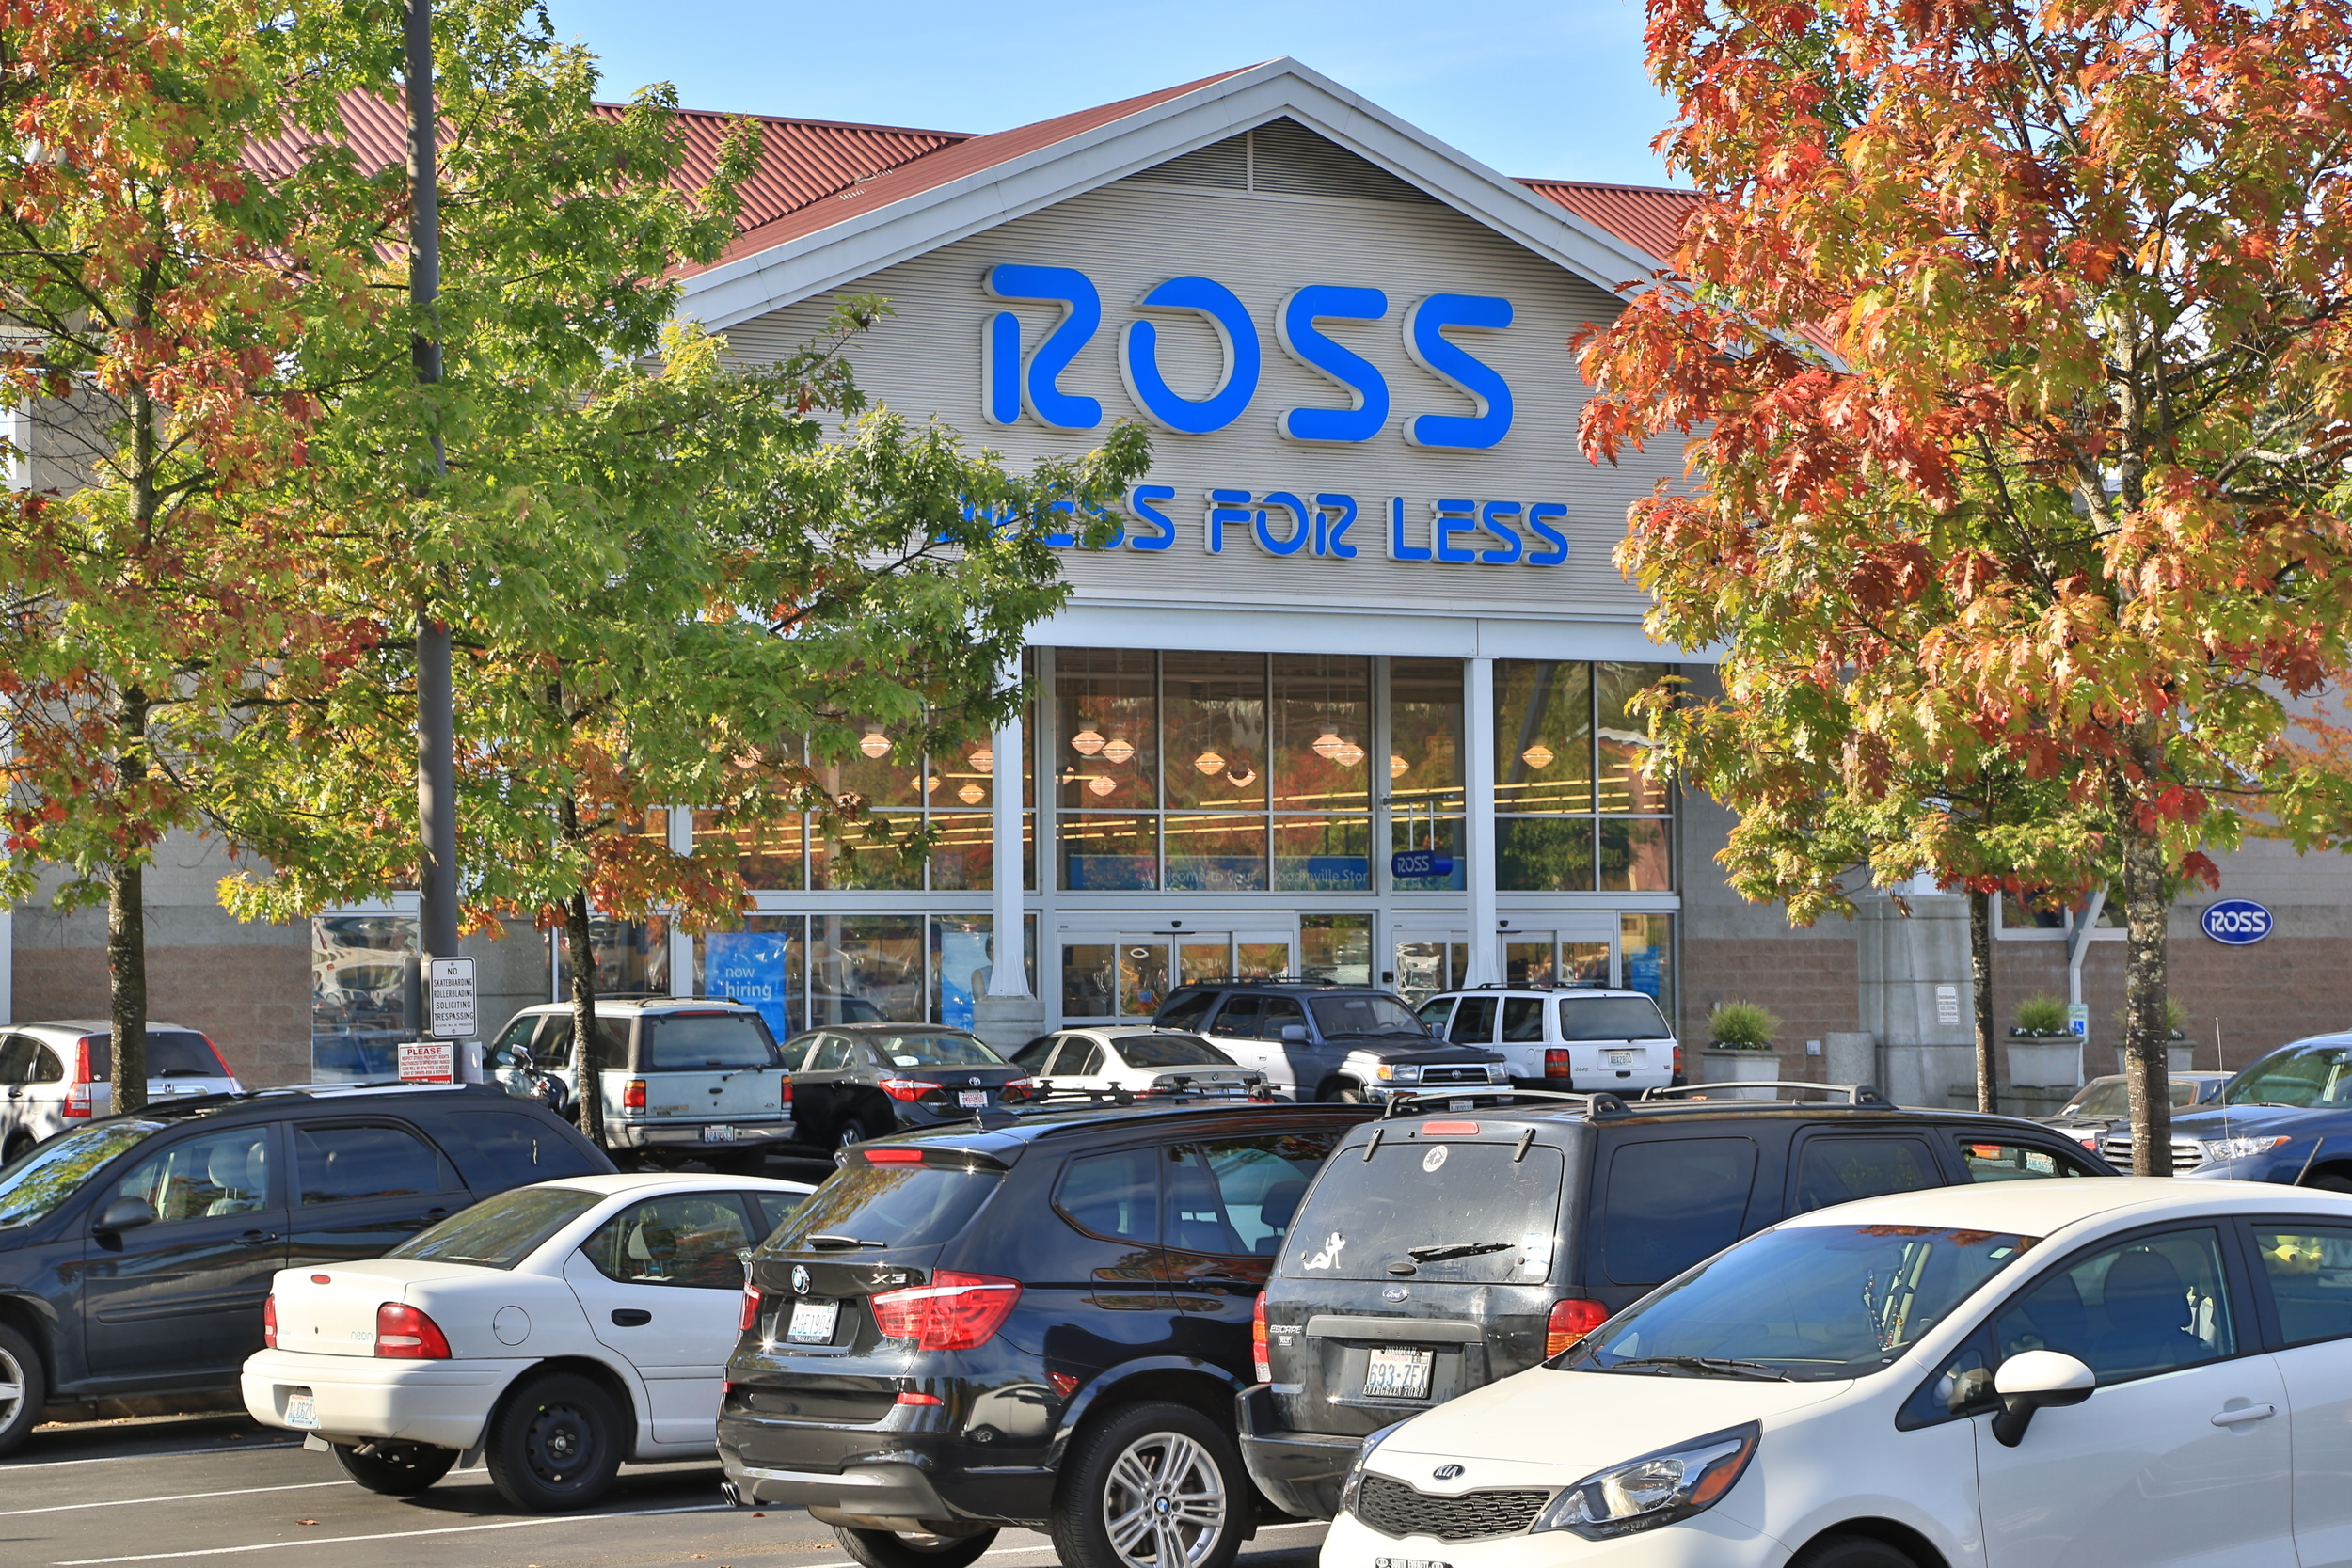 DTW - Downtown Woodinville - Ross #1.JPG